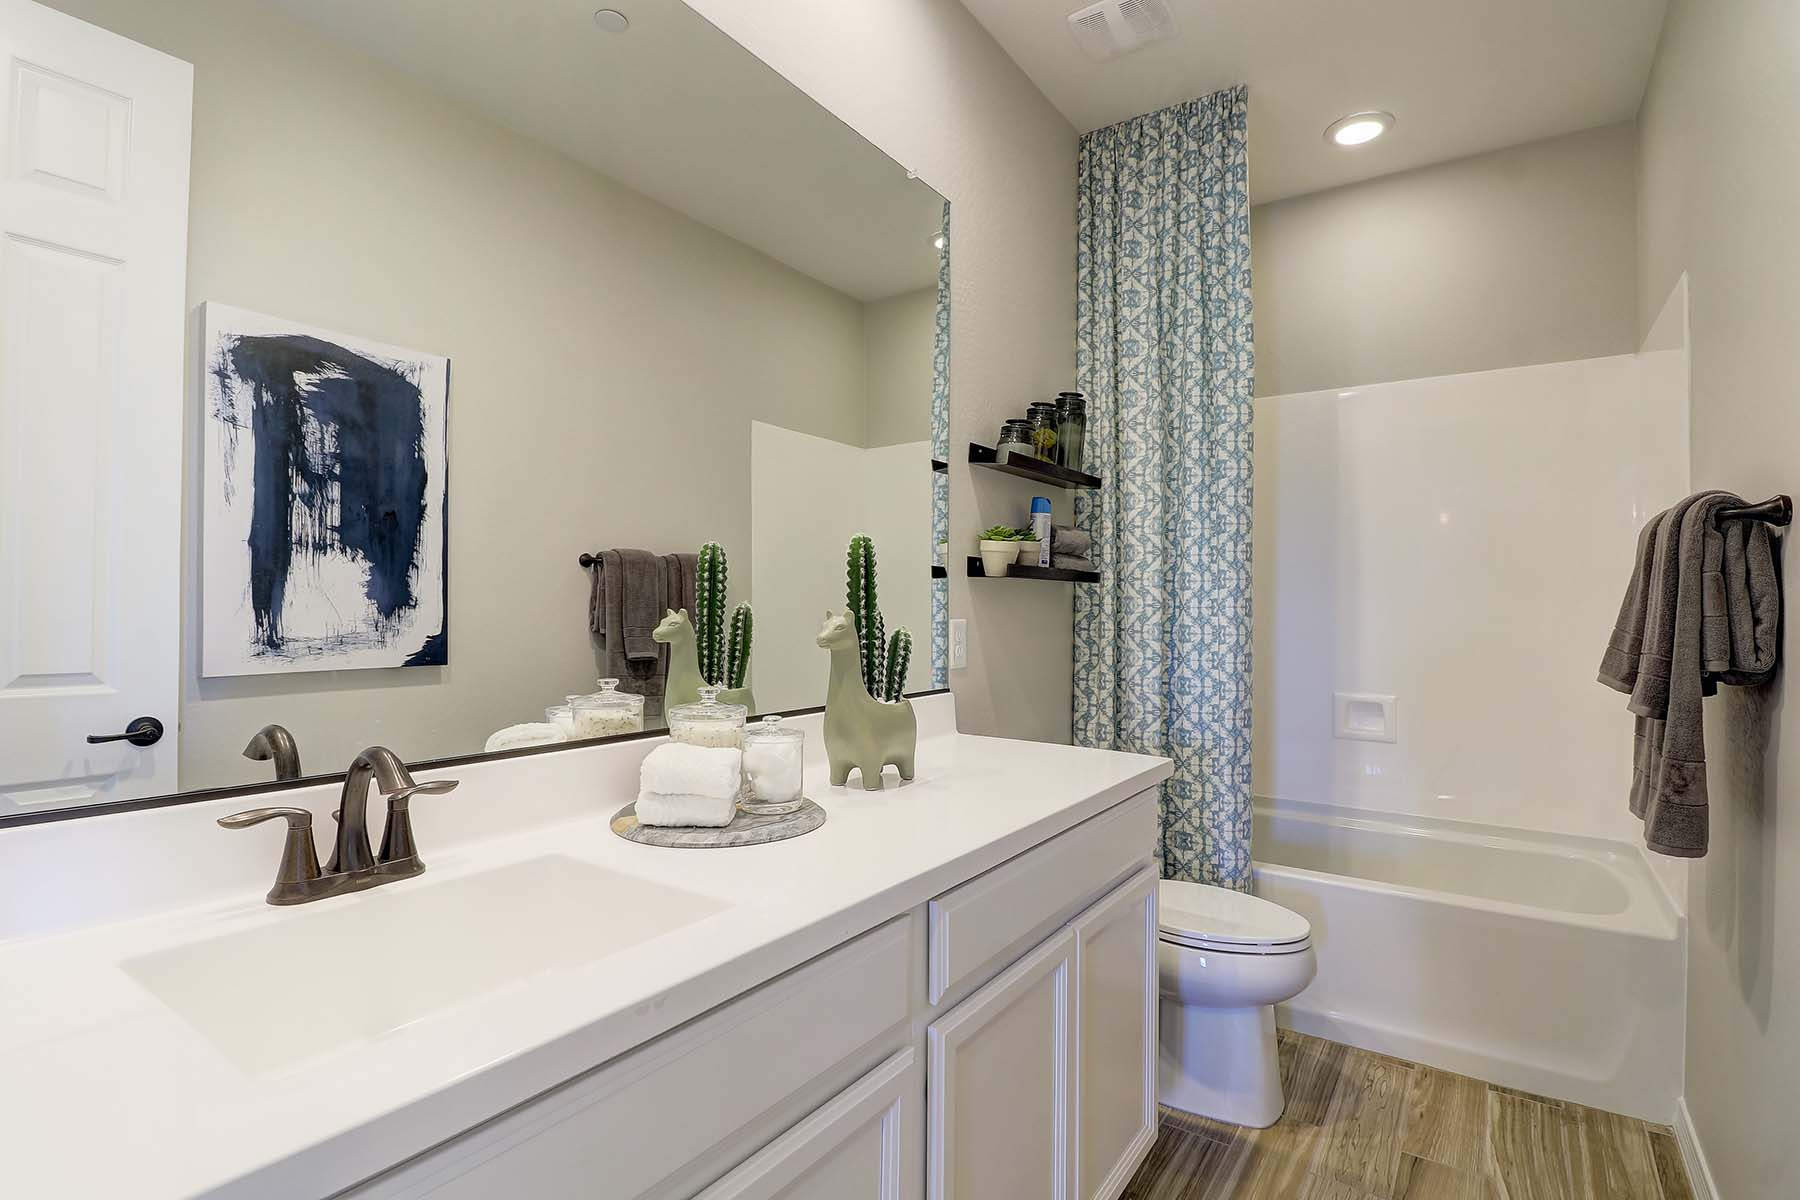 Everly Plan Bath at Brookside at Arroyo Seco in Buckeye Arizona by Mattamy Homes